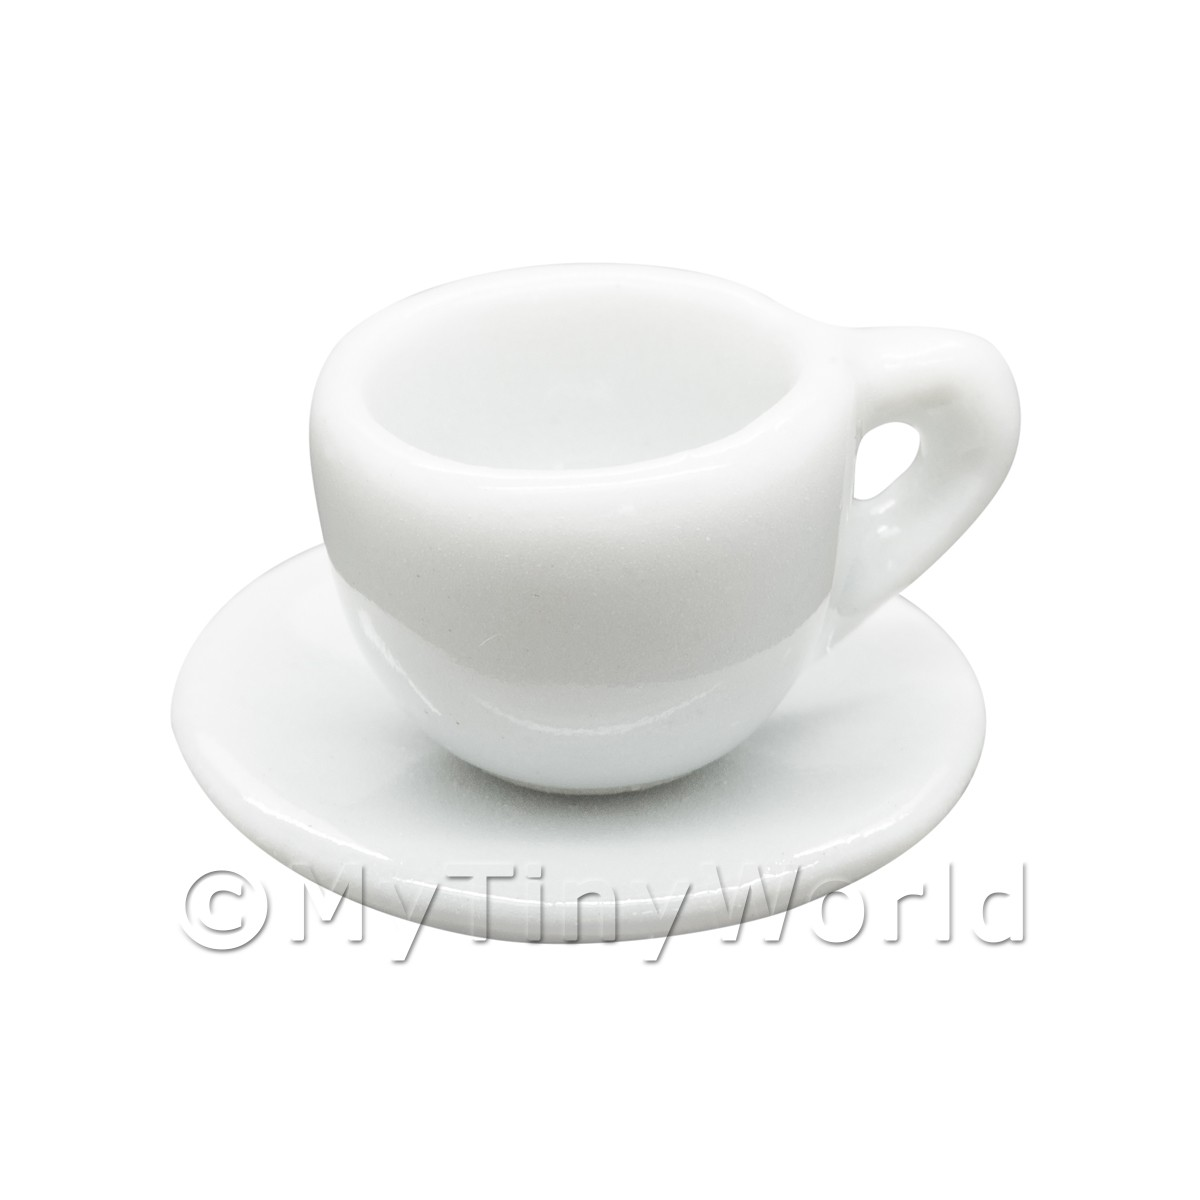 Dolls House Miniature White Ceramic Round Cup and Saucer